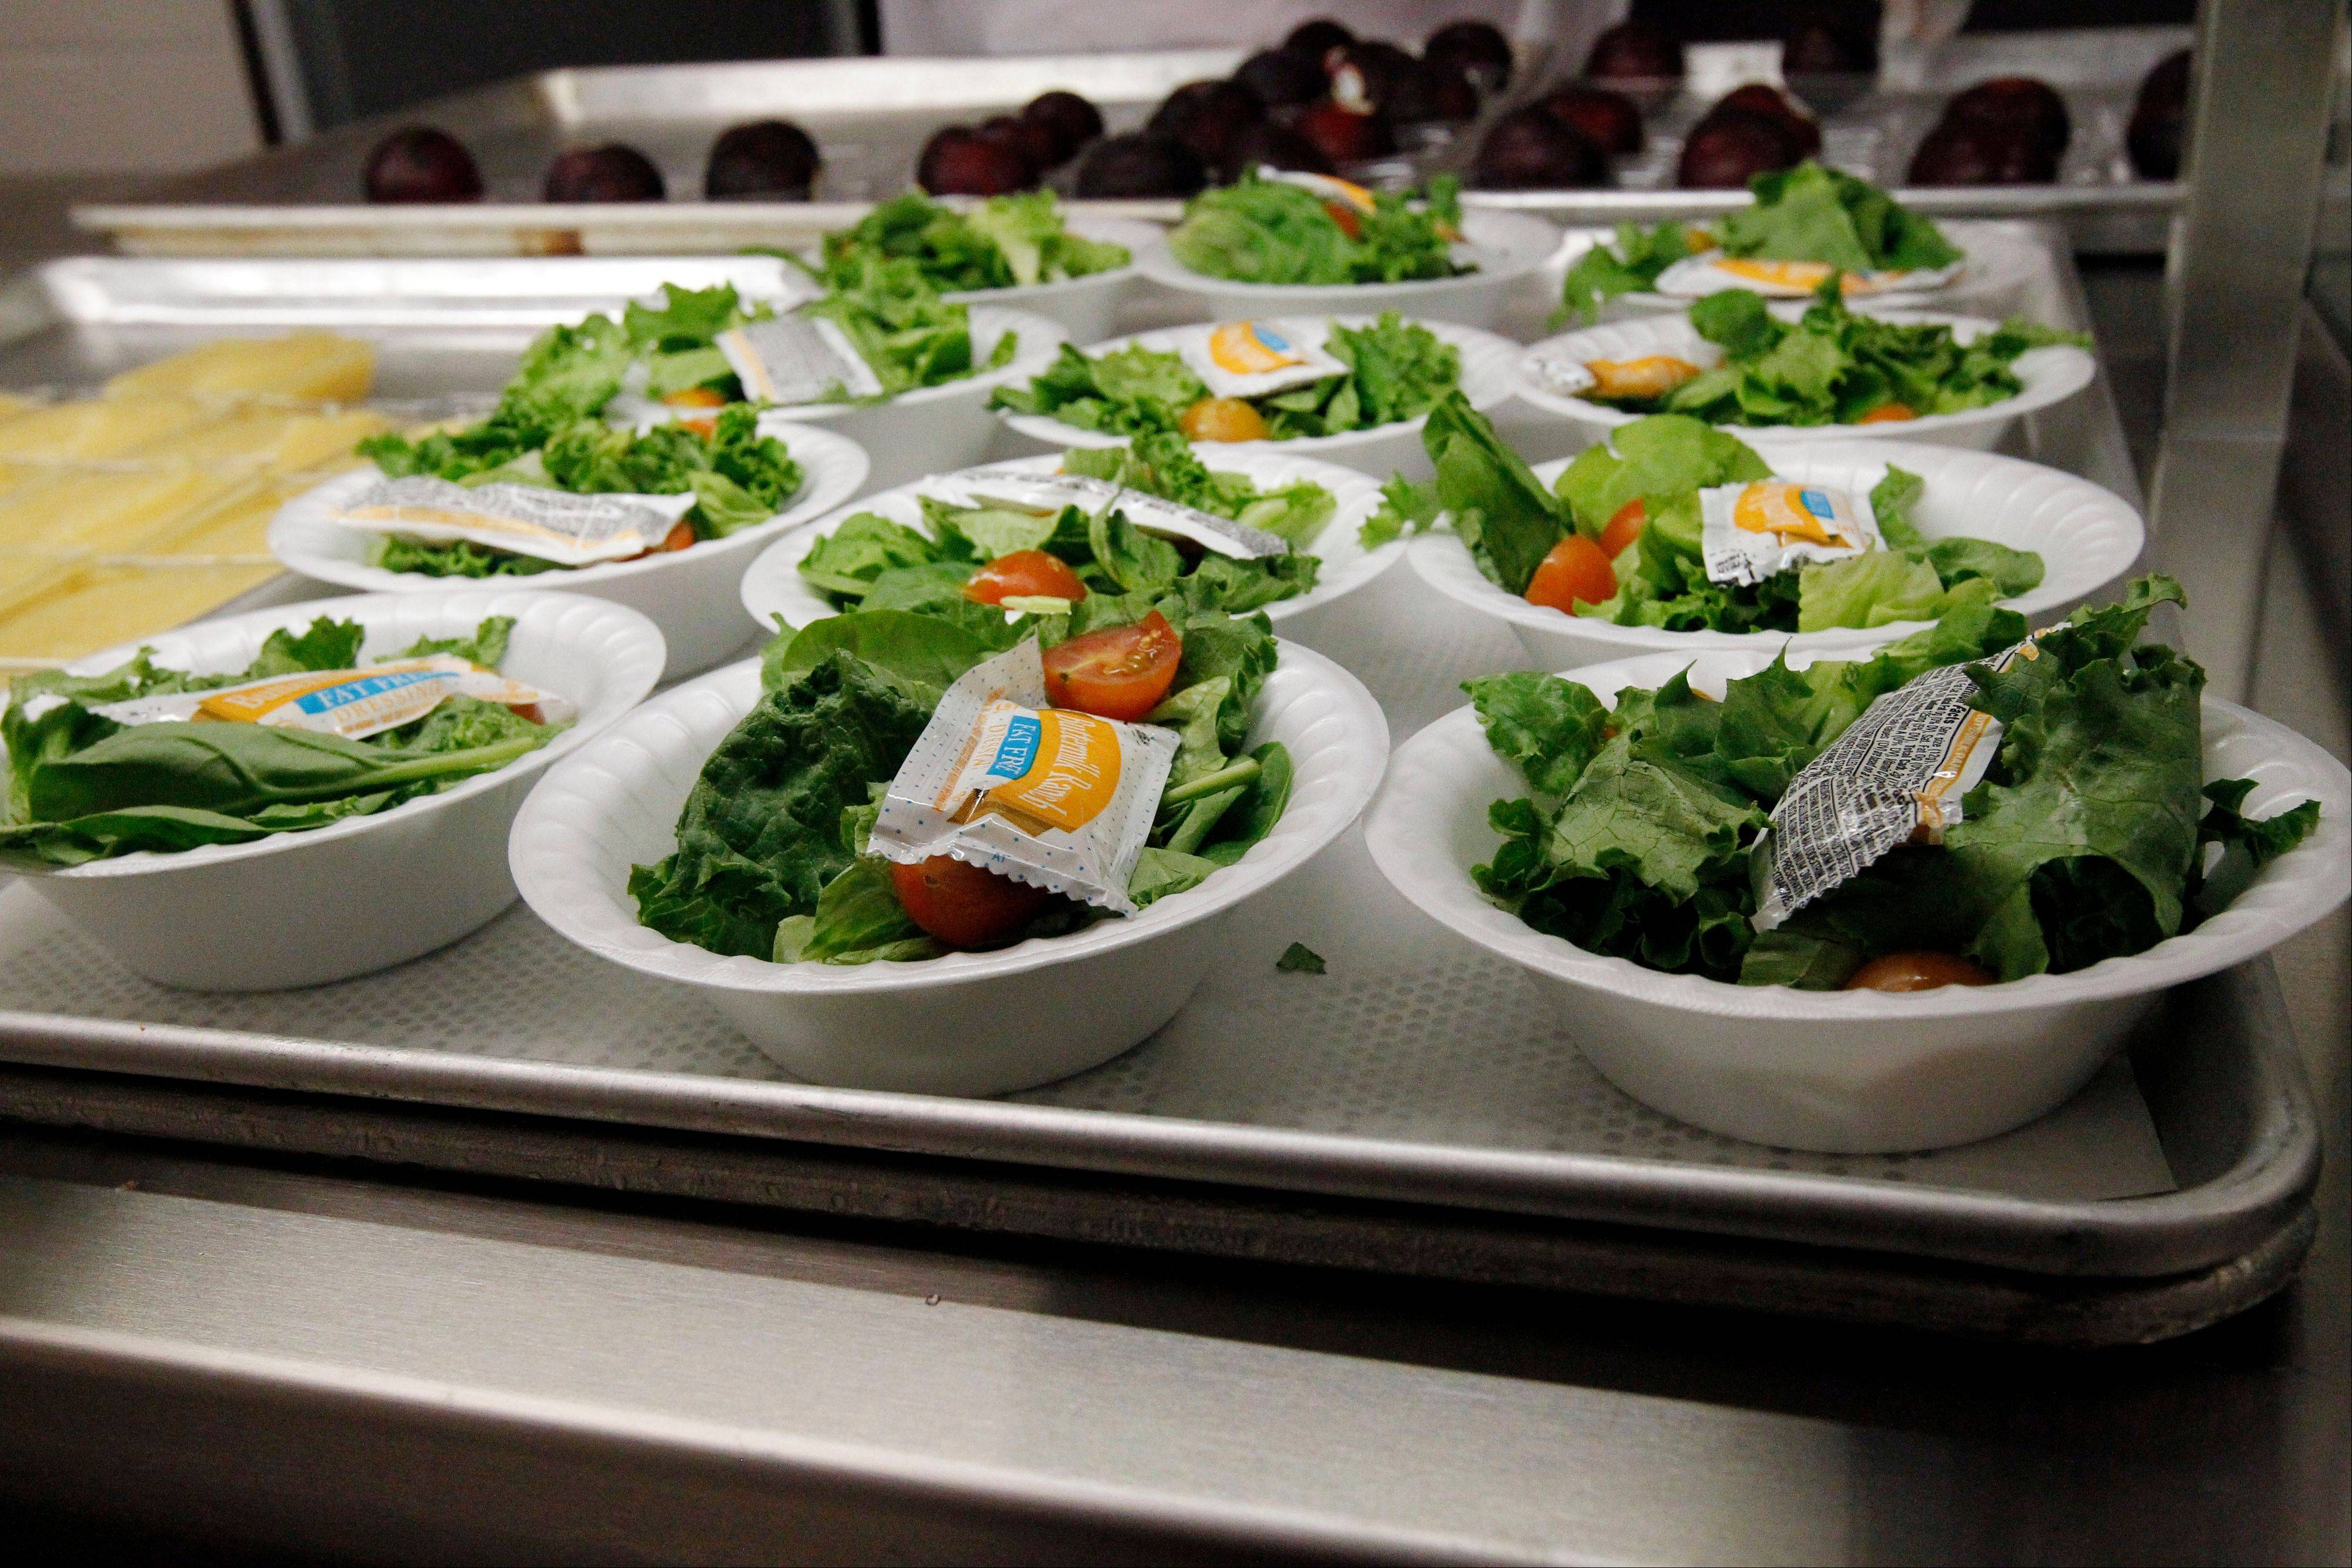 Side salads await the students of Eastside Elementary School in Clinton, Miss.